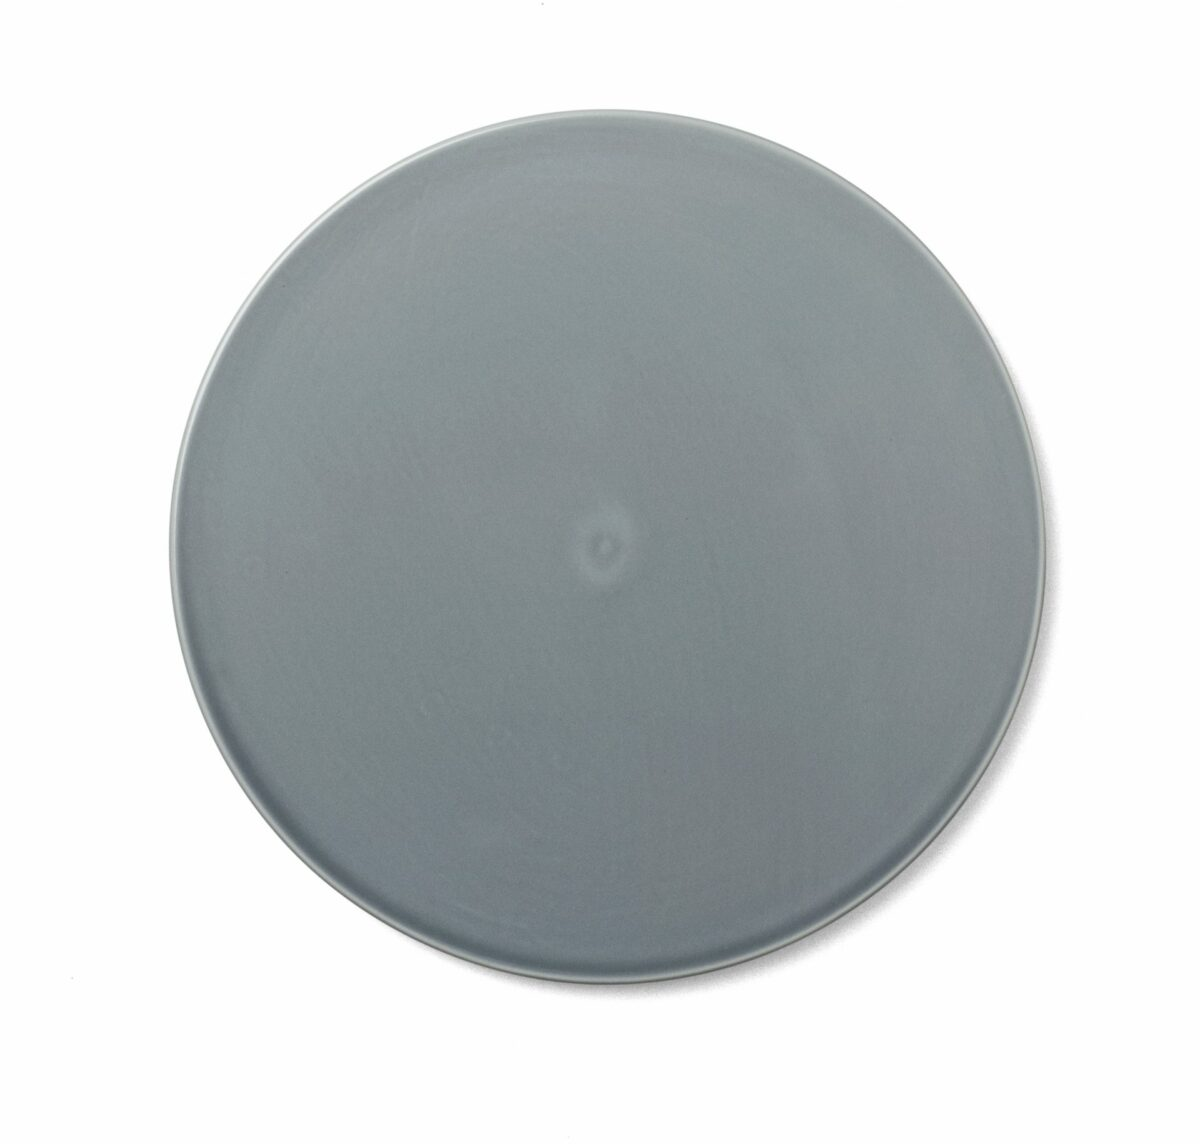 2013710 New Norm Plate lid O215 cm Ocean Norm 01